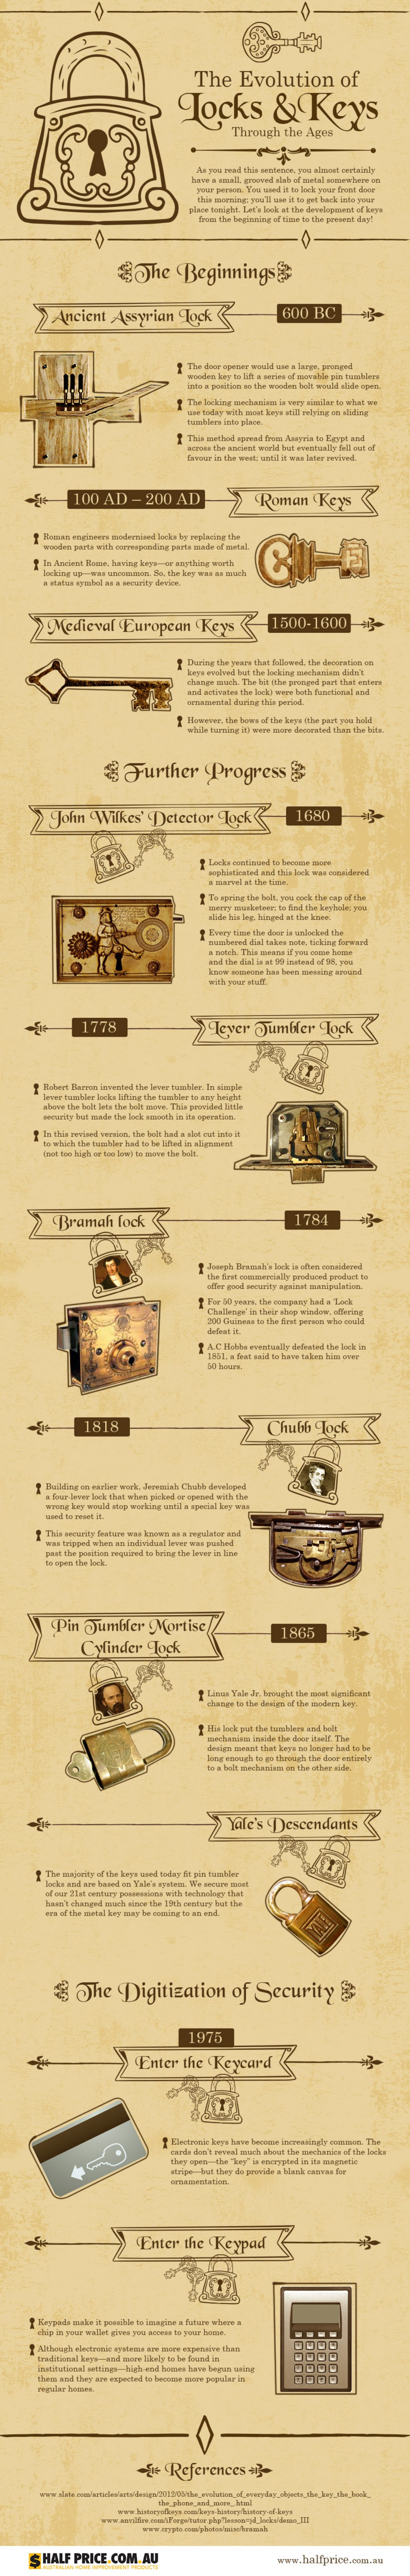 Eternal Quest for Security: Evolution of Locks & Keys - Infographic